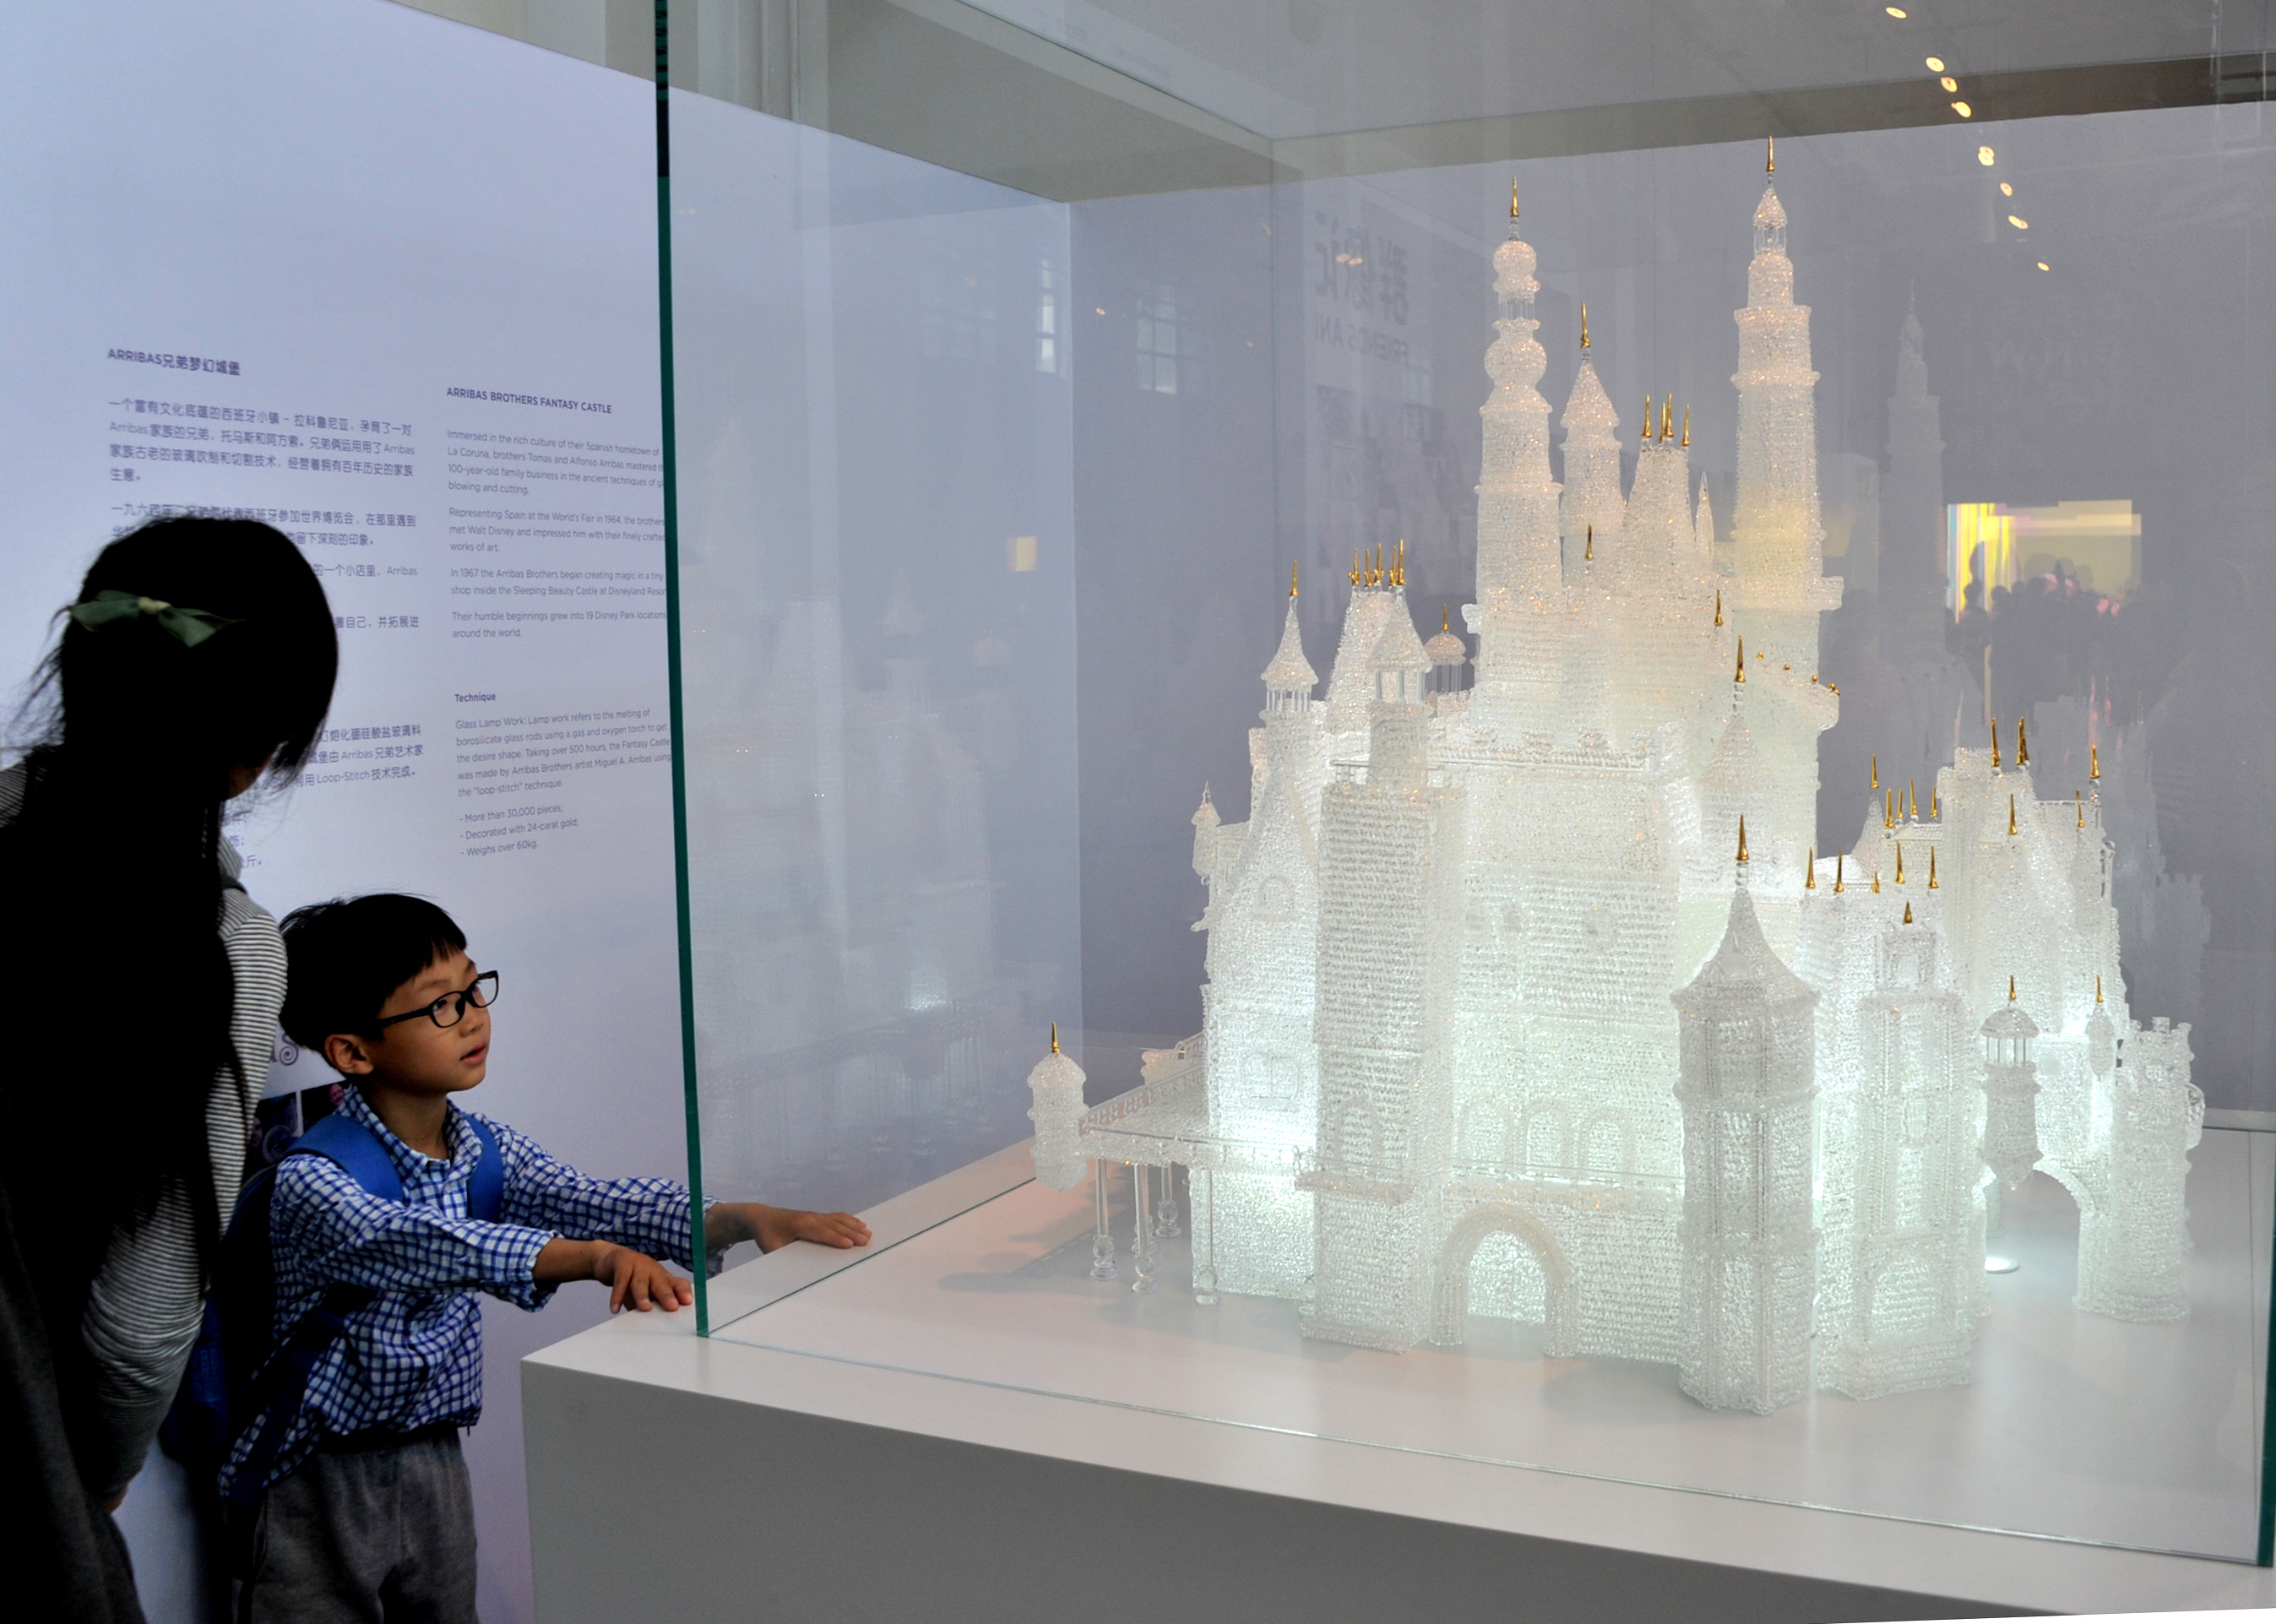 Two Boisterous Kids Smashed a $64,000 Glass Sculpture of a Disney Castle at the Shanghai Museum of Glass